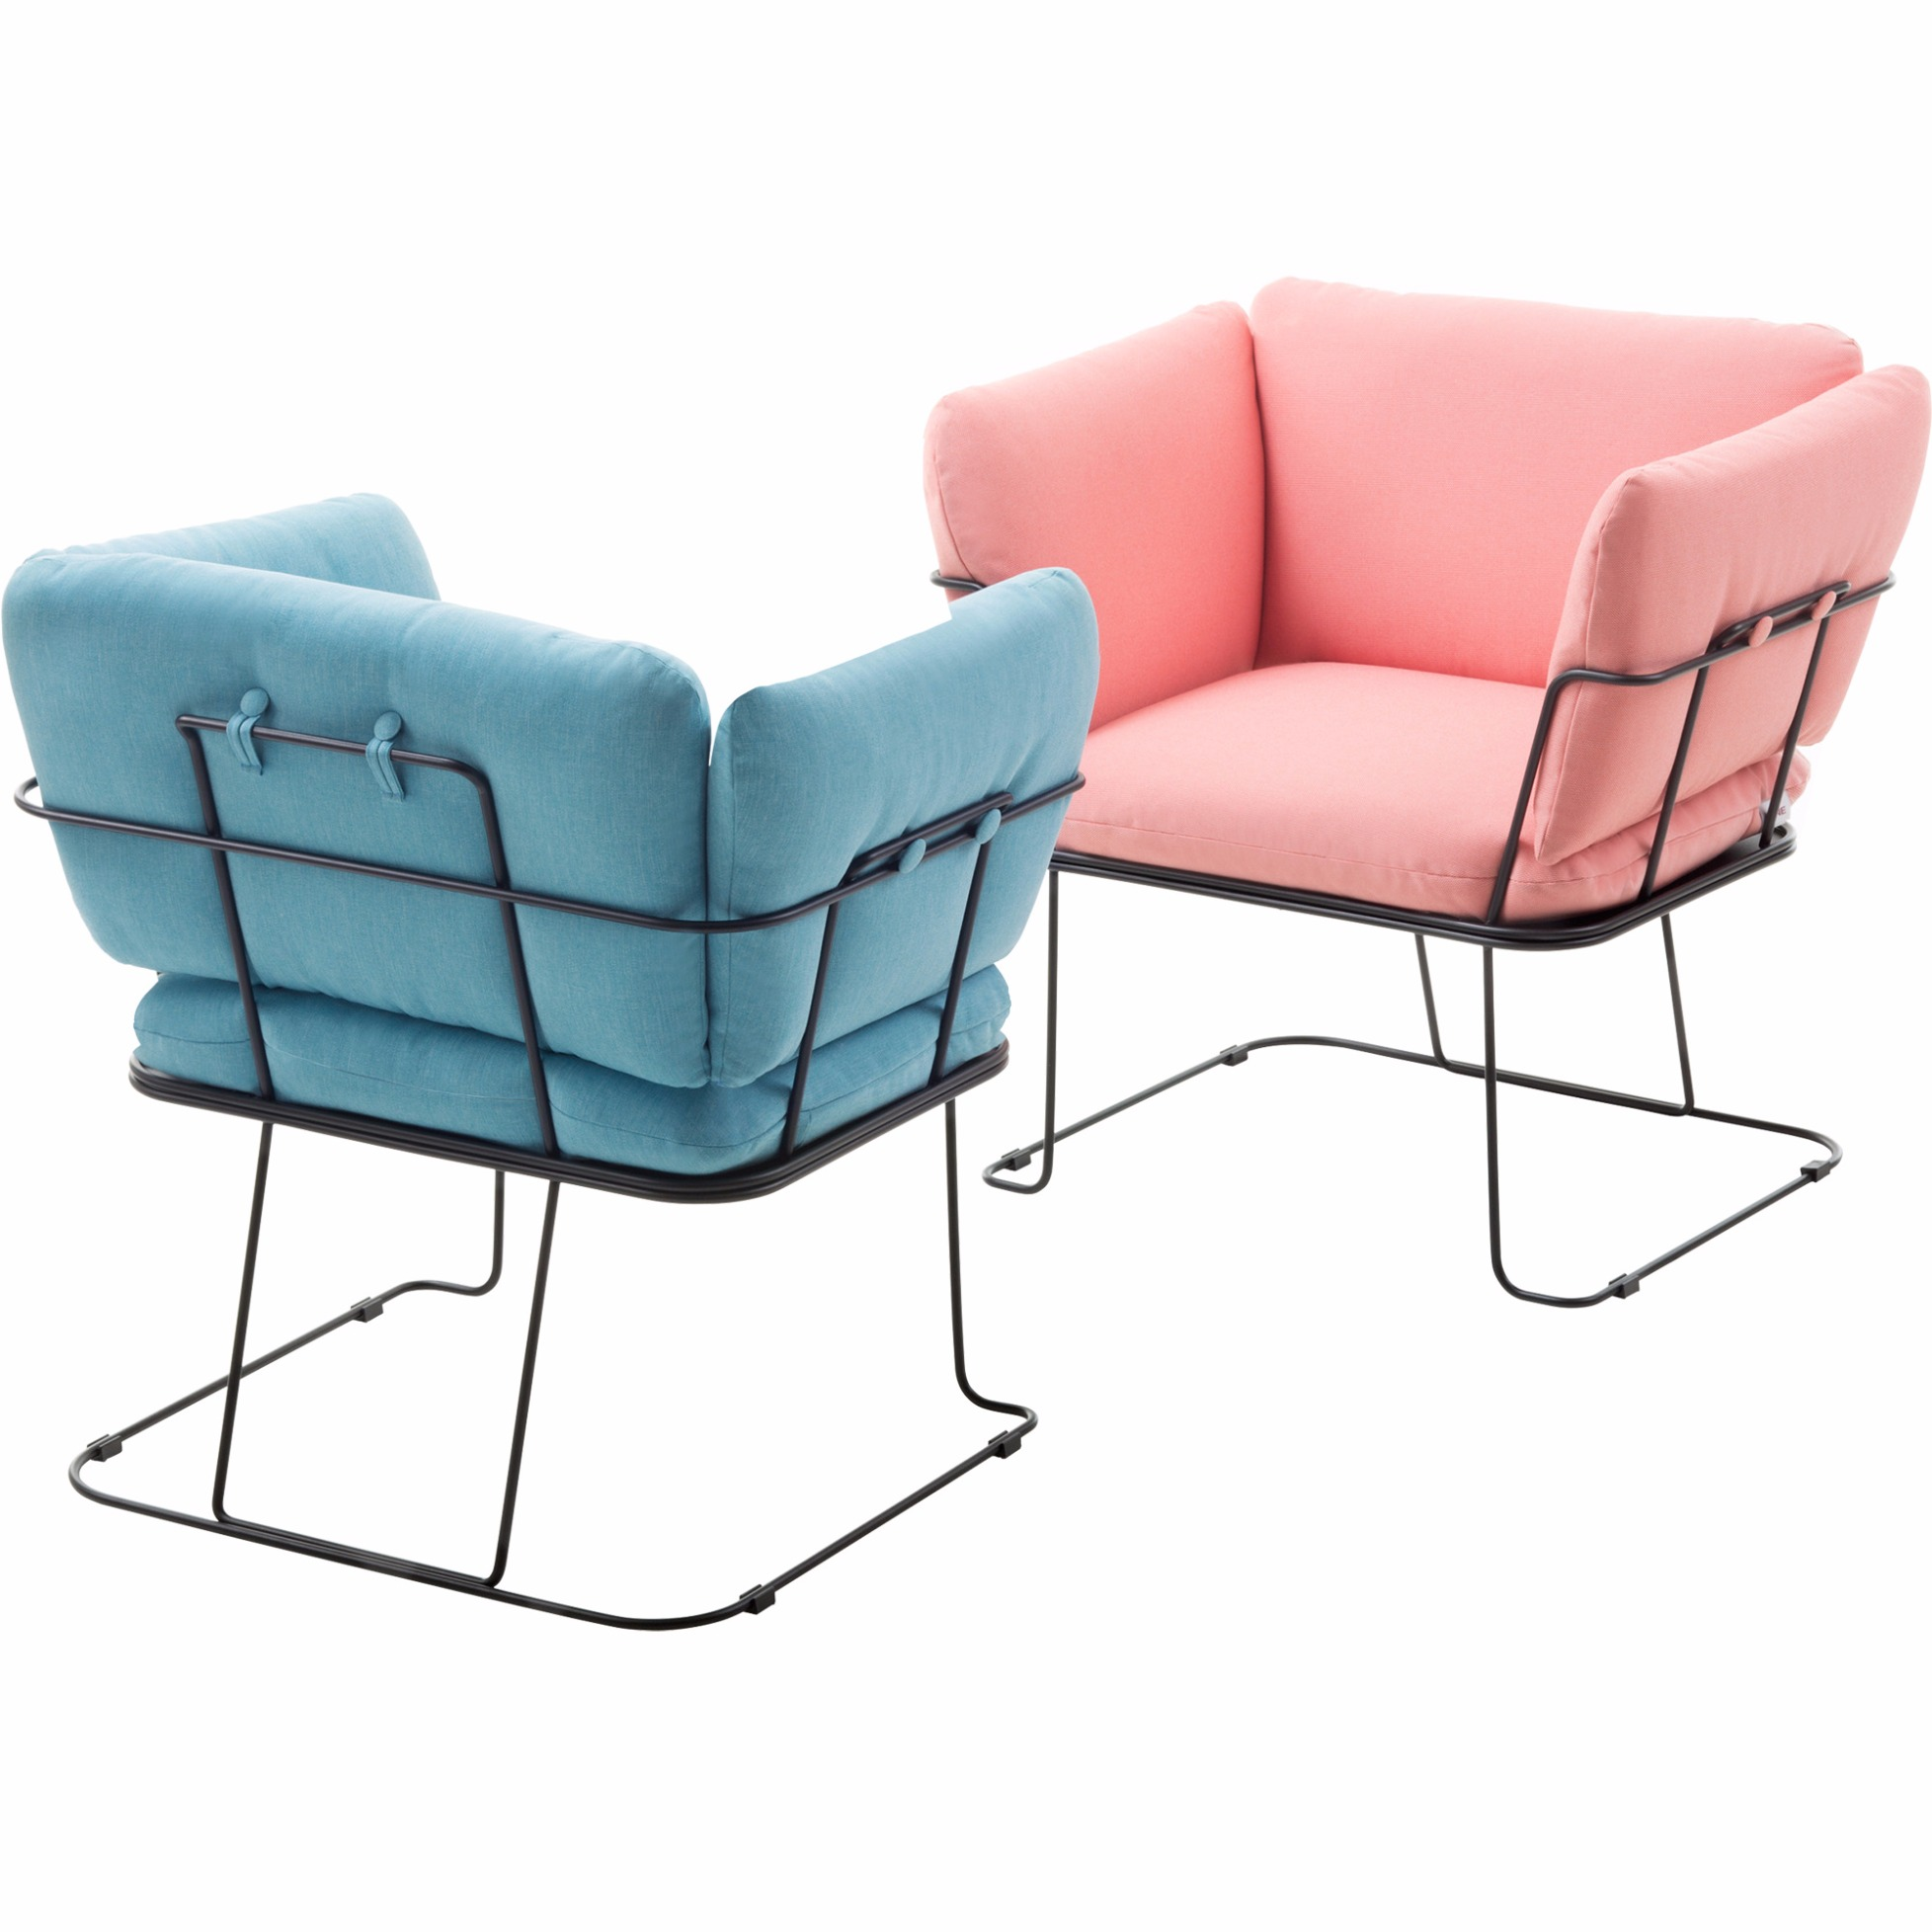 Merano Lounge Sessel Lounge Chair Merano By B Line